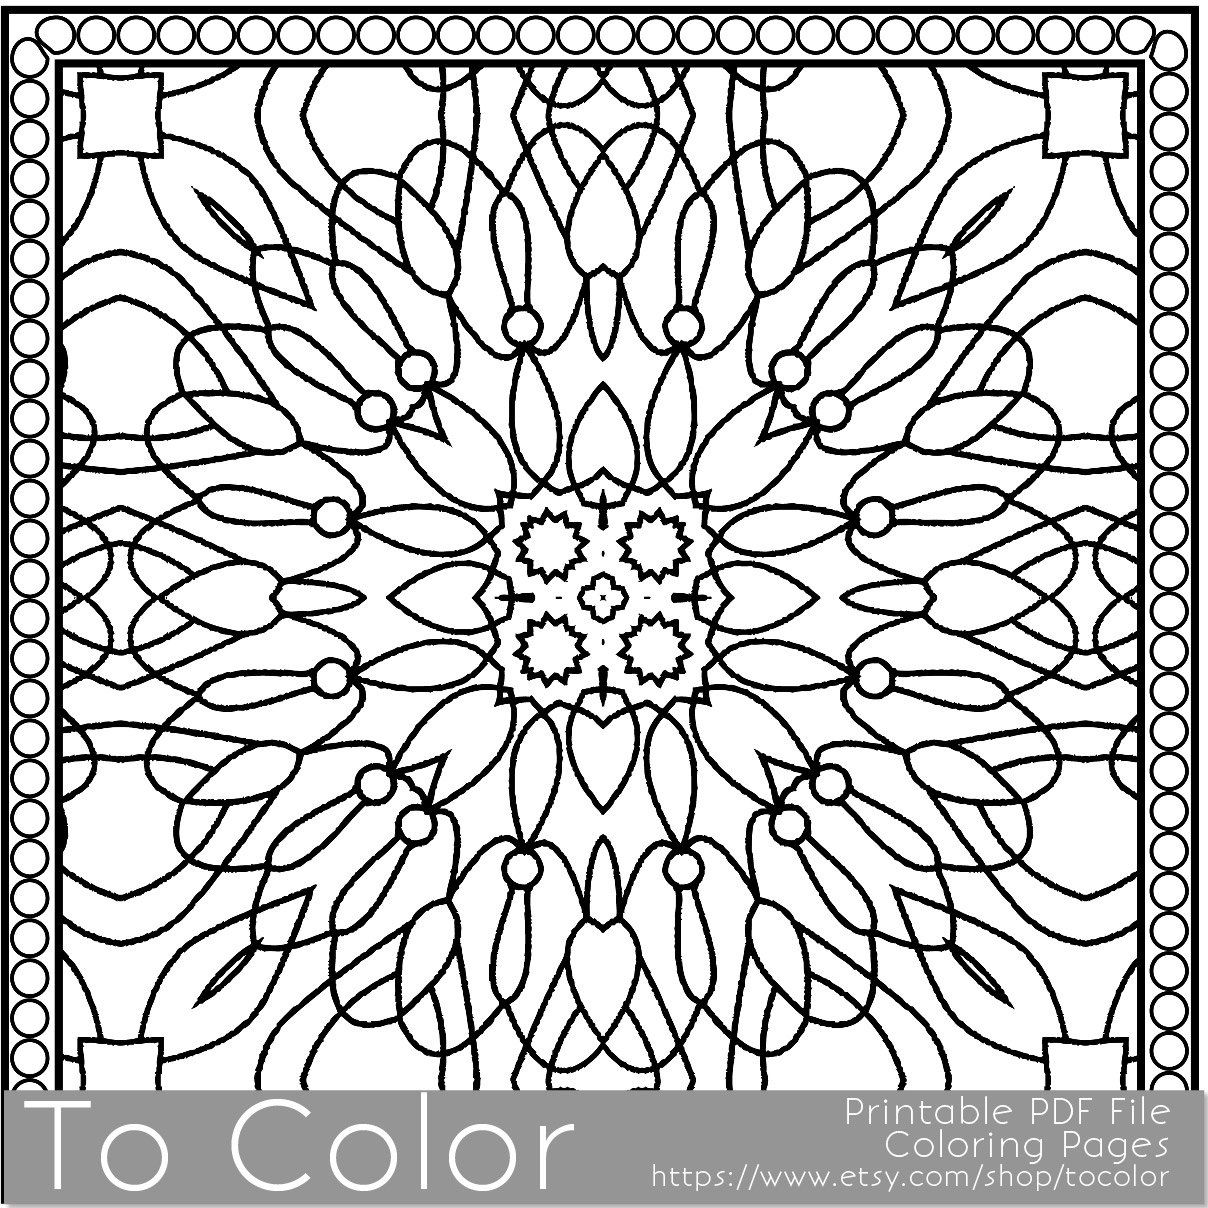 printable coloring pages for adults square coloring pattern pdf jpg instant download